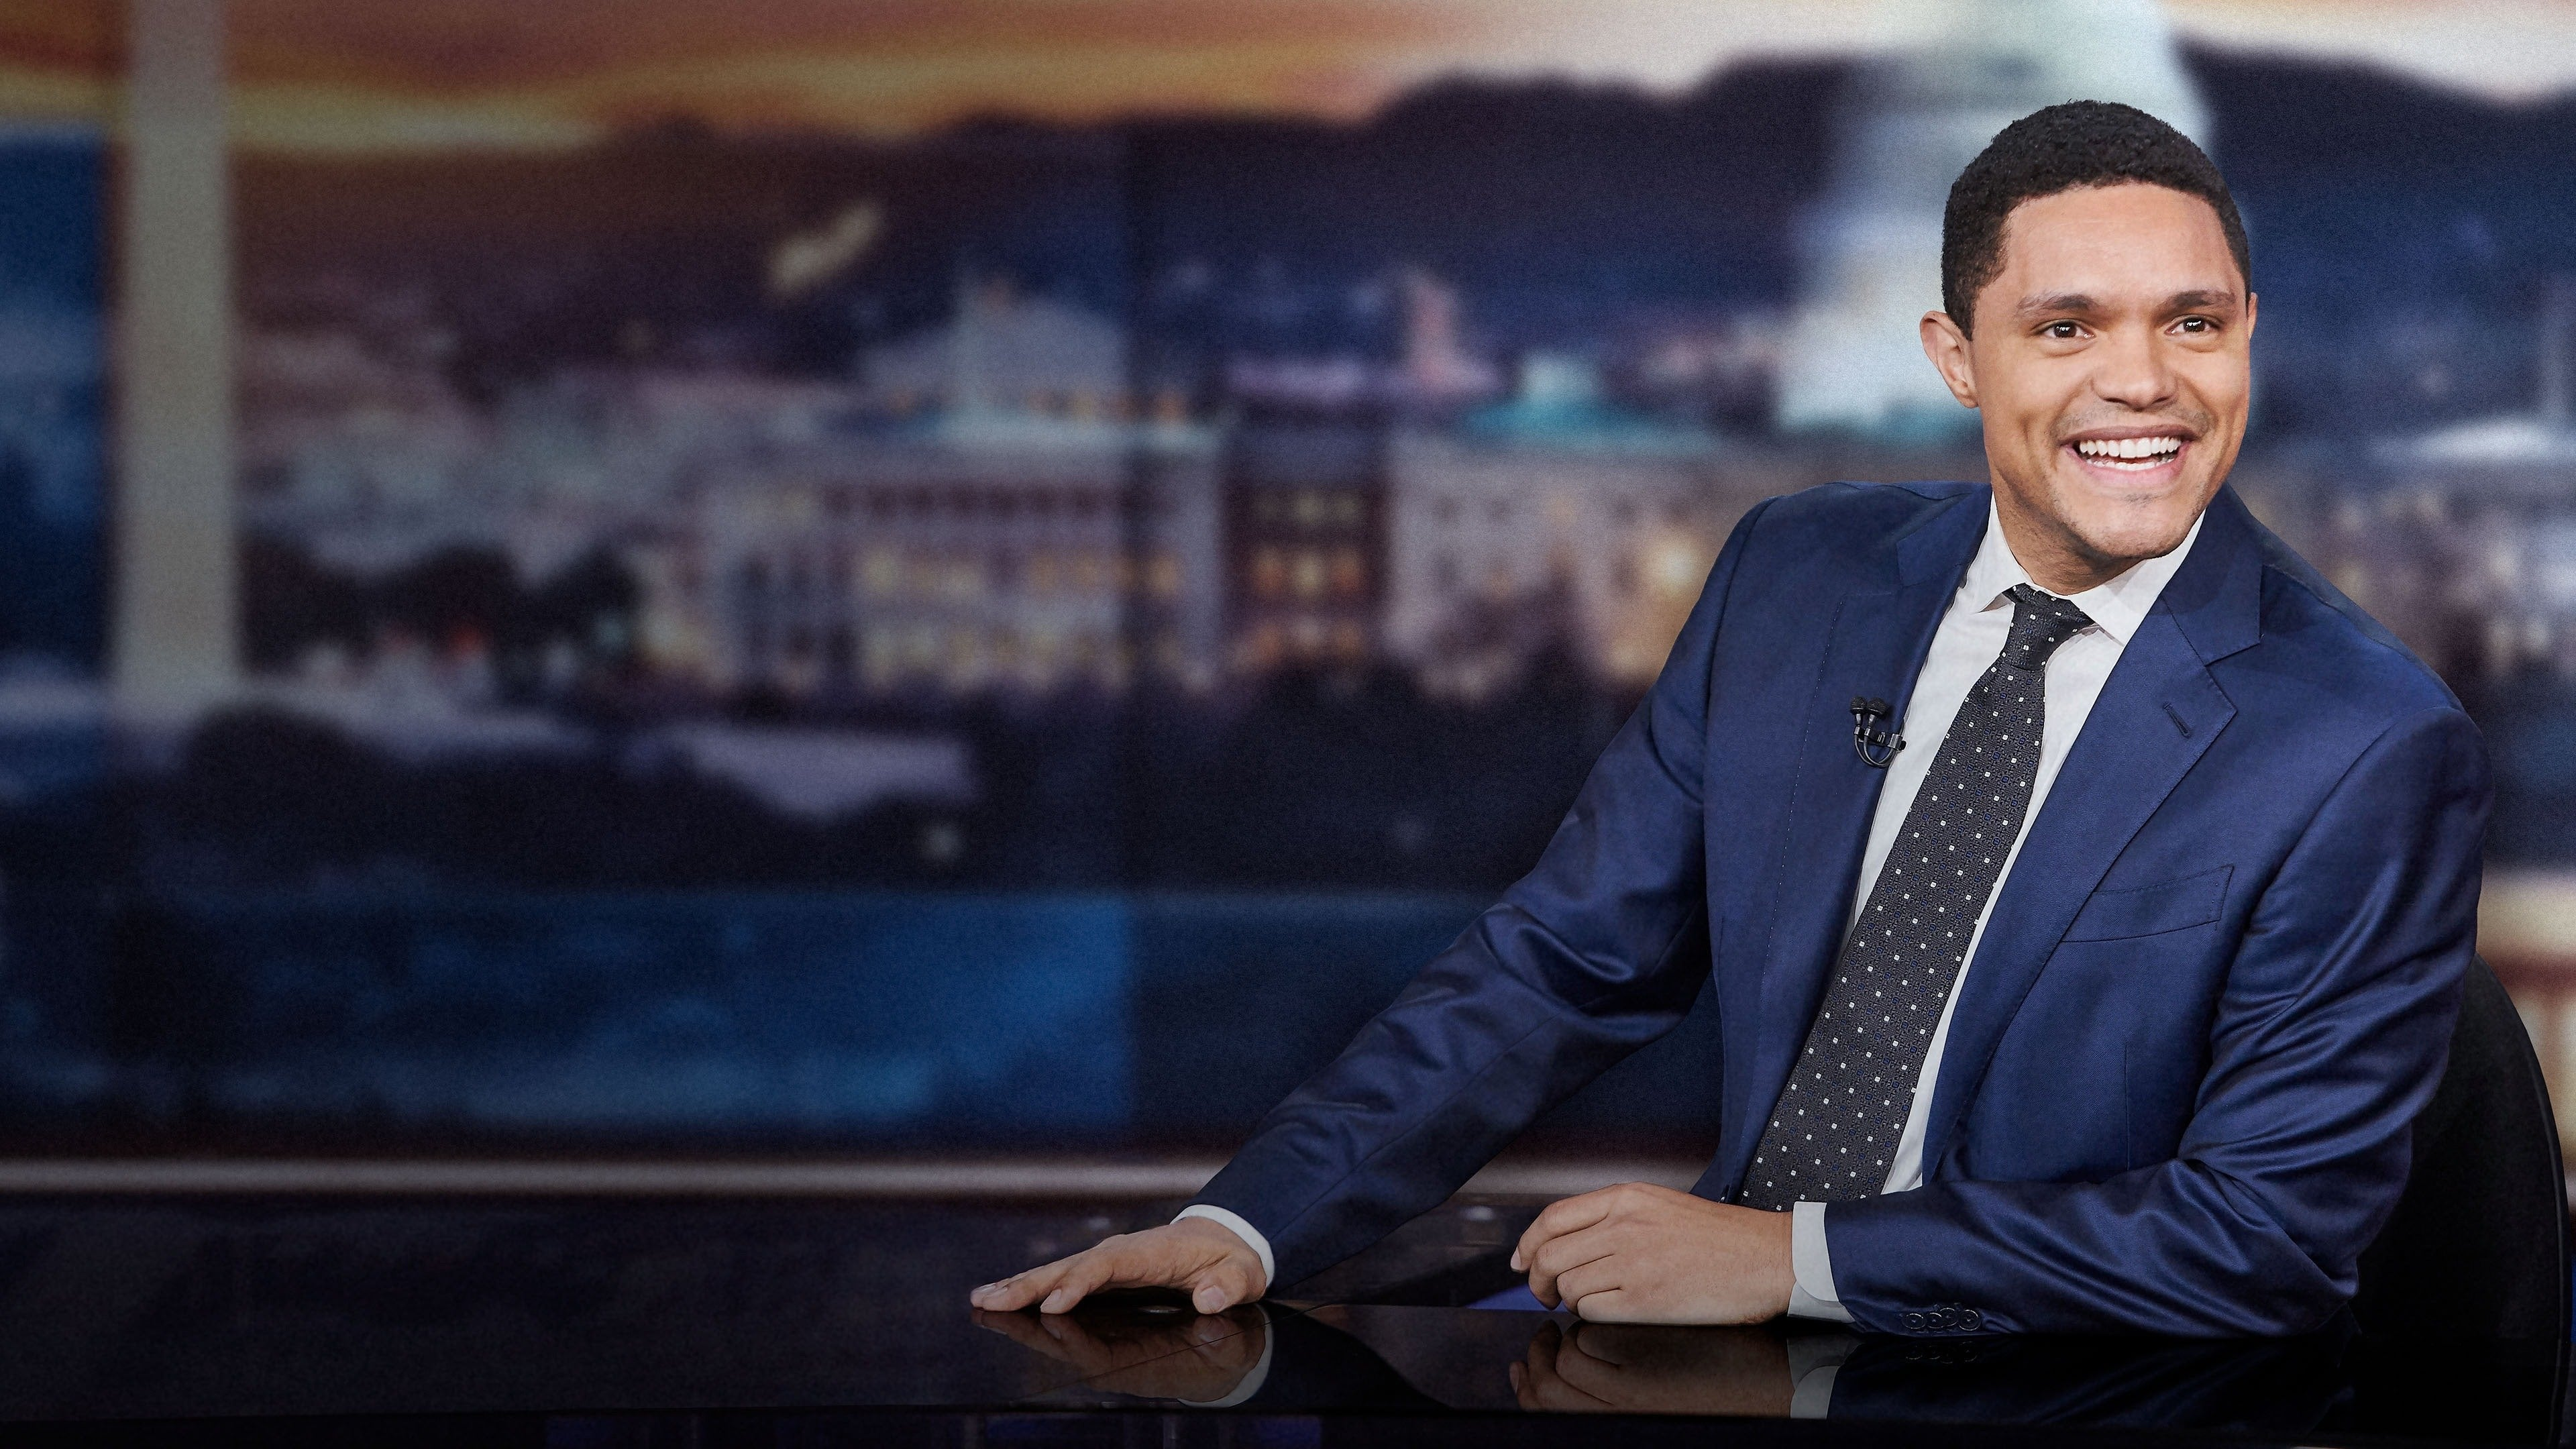 The Daily Show with Trevor Noah - Season 2